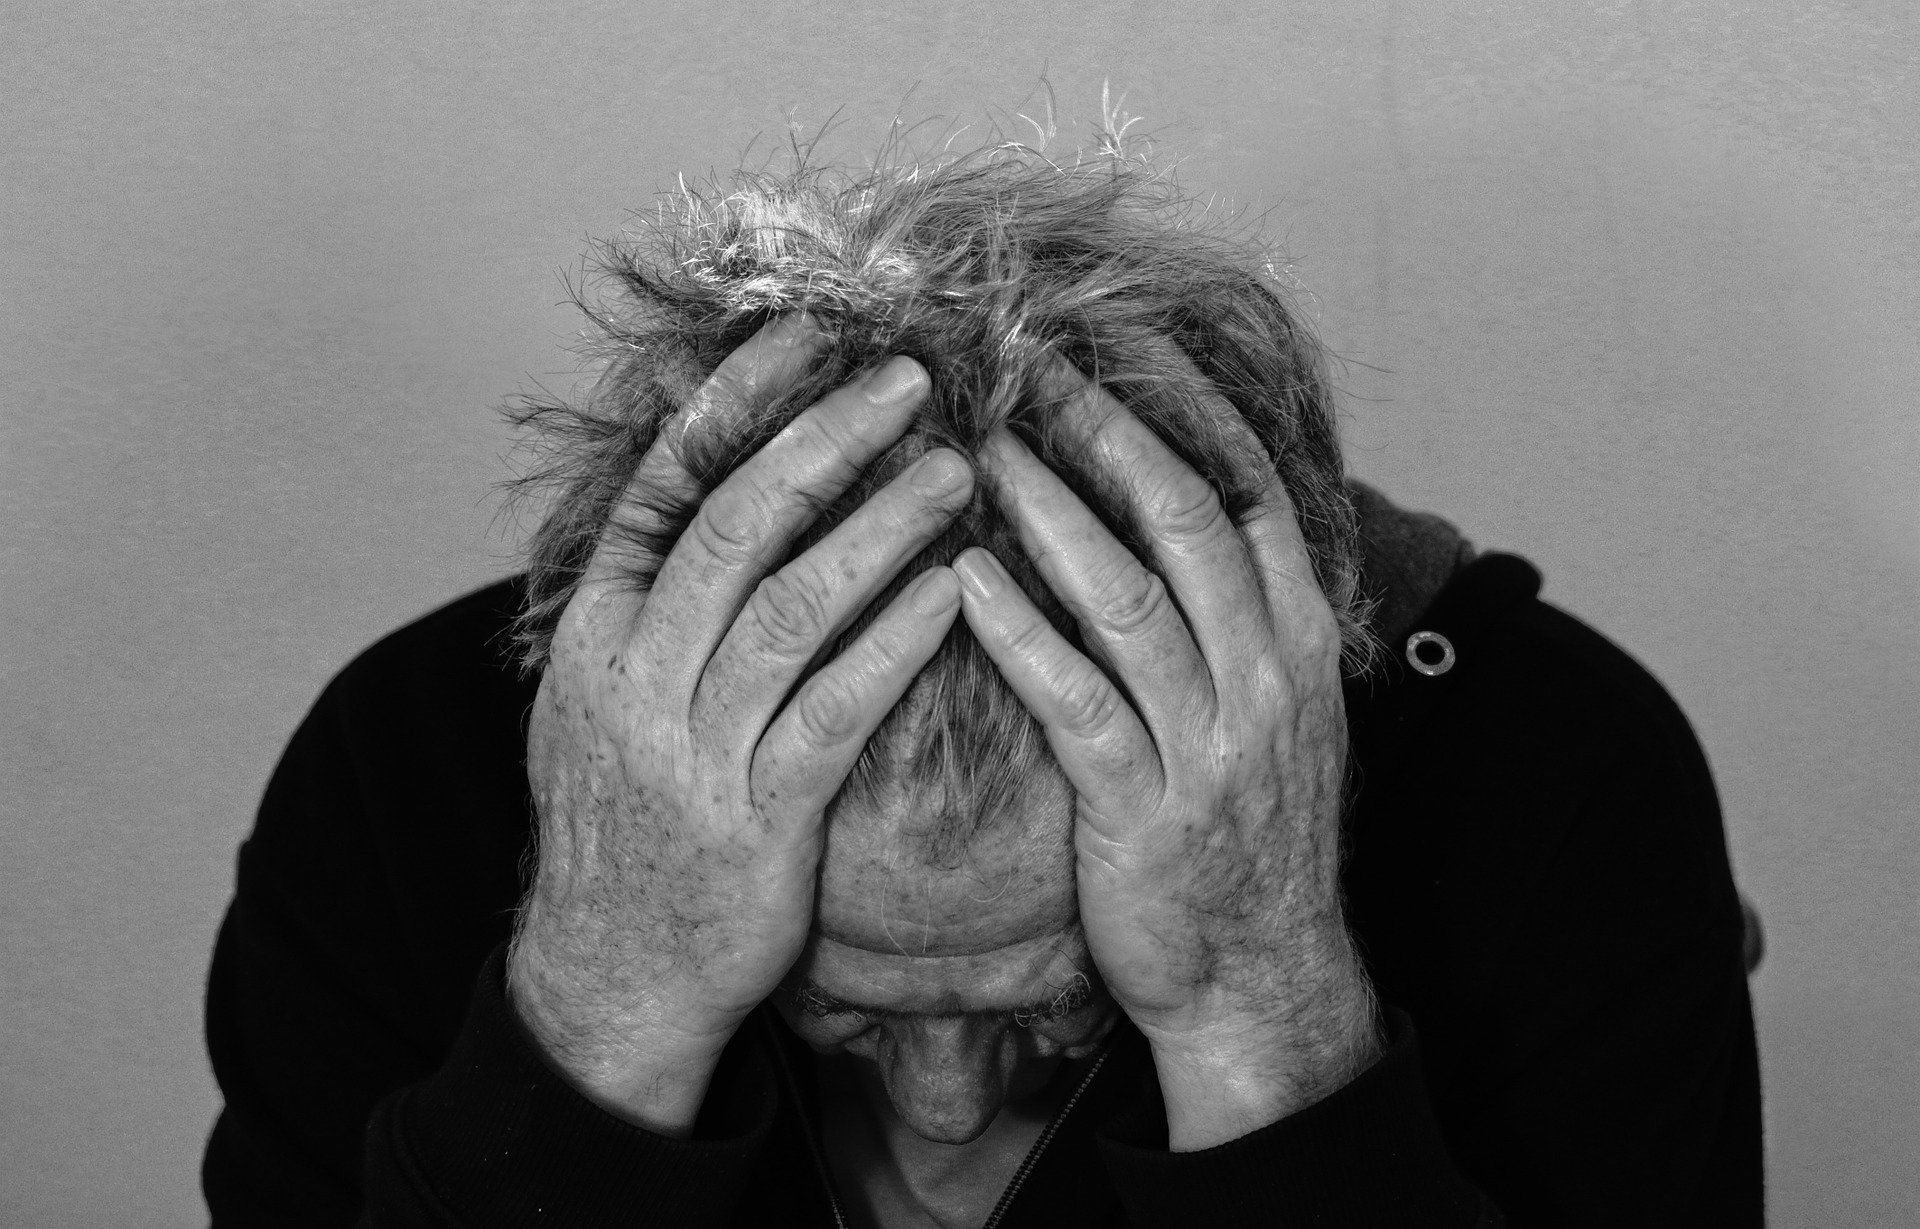 Depression affects millions of people around the world, because of this learning strategies to avoid the disorder and depressive symptoms is important.